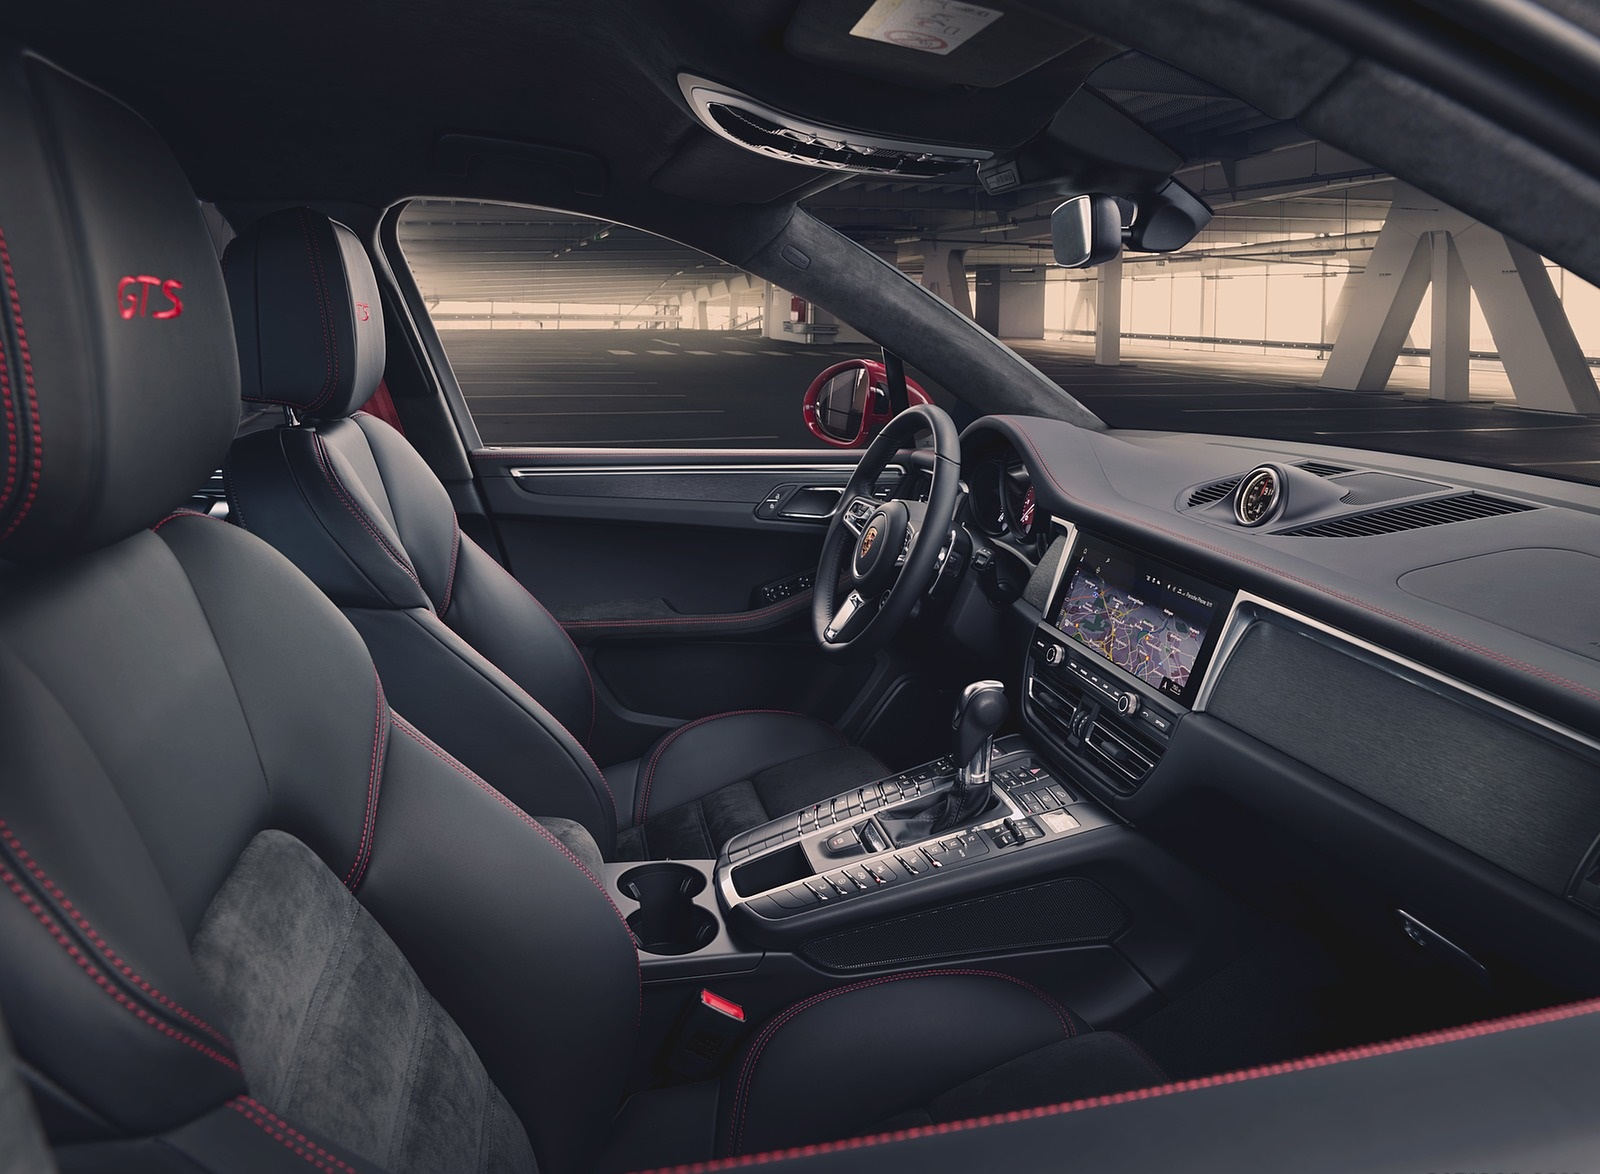 2020 Porsche Macan Gts Interior Wallpapers 211 Newcarcars